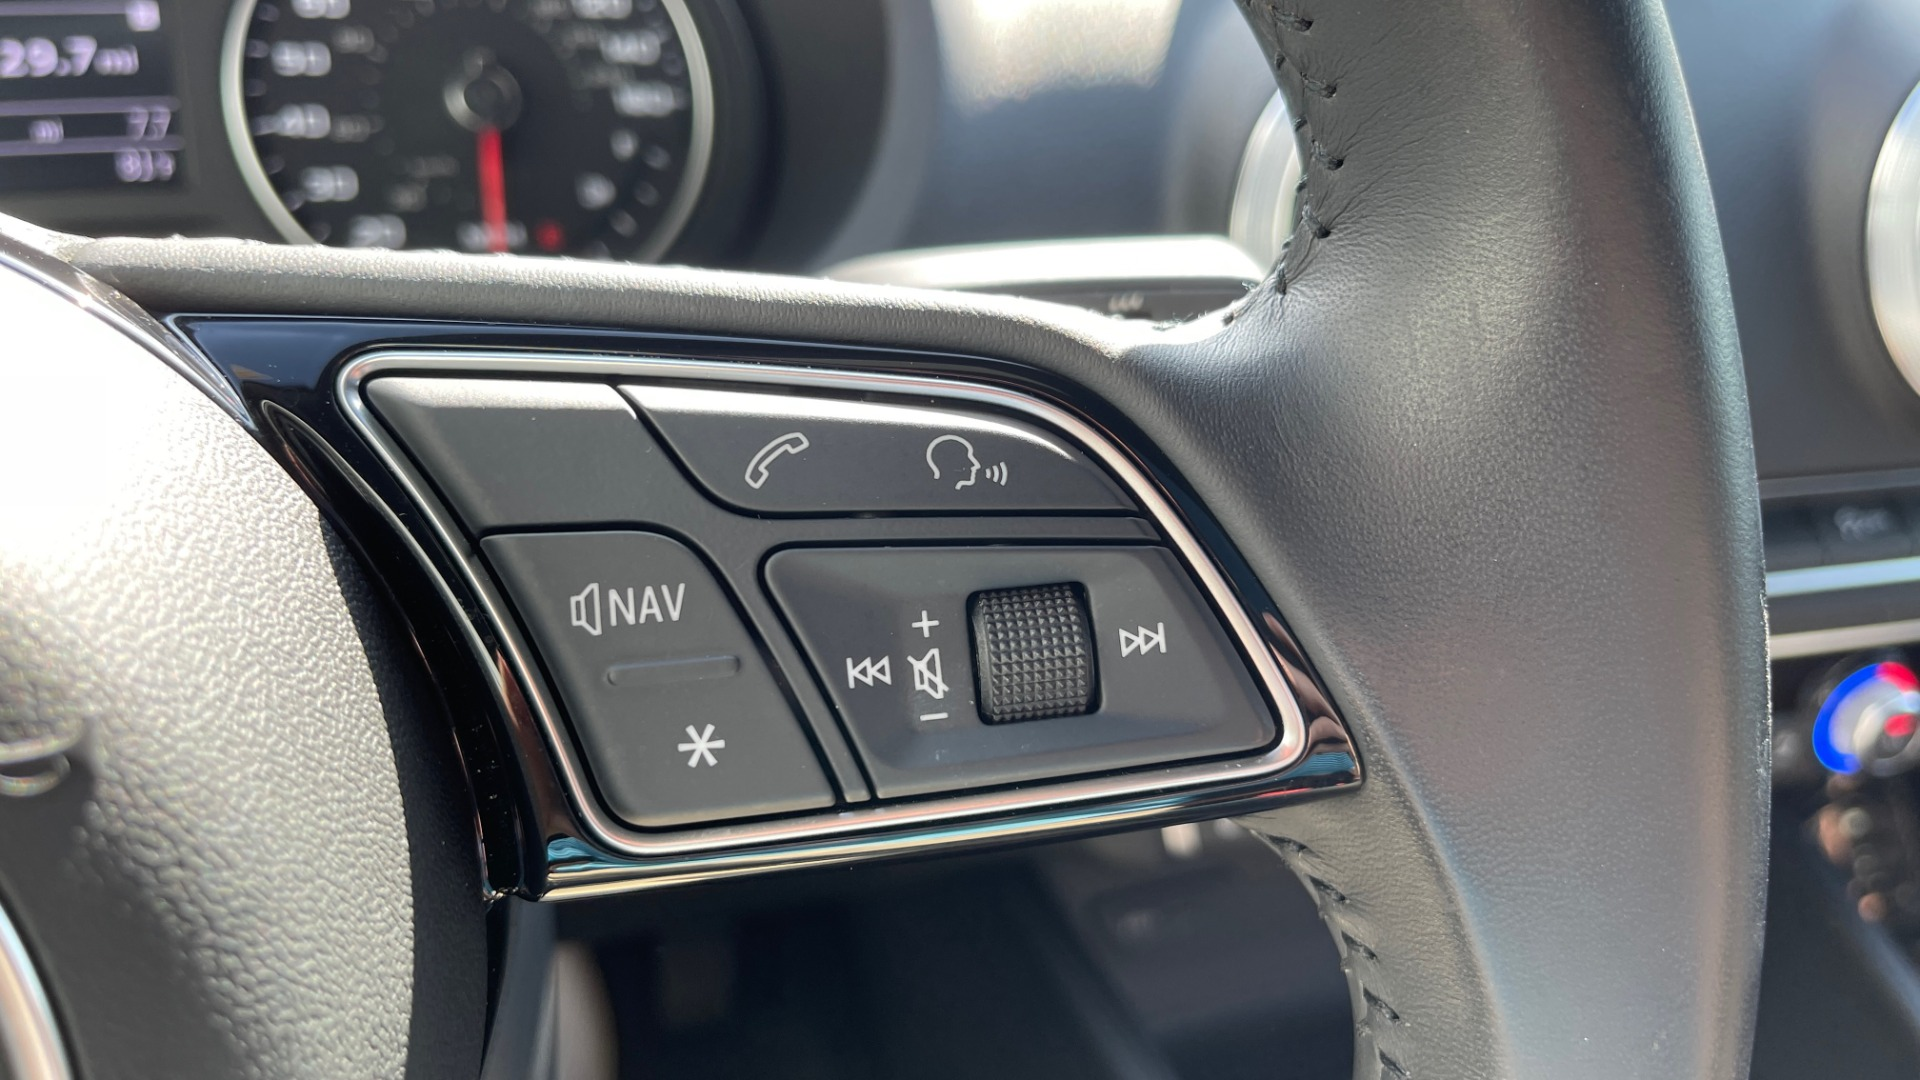 Used 2018 Audi A3 SEDAN PREMIUM PLUS / S-LINE / PANO-ROOF / PARK SYS / REARVIEW for sale $31,795 at Formula Imports in Charlotte NC 28227 33